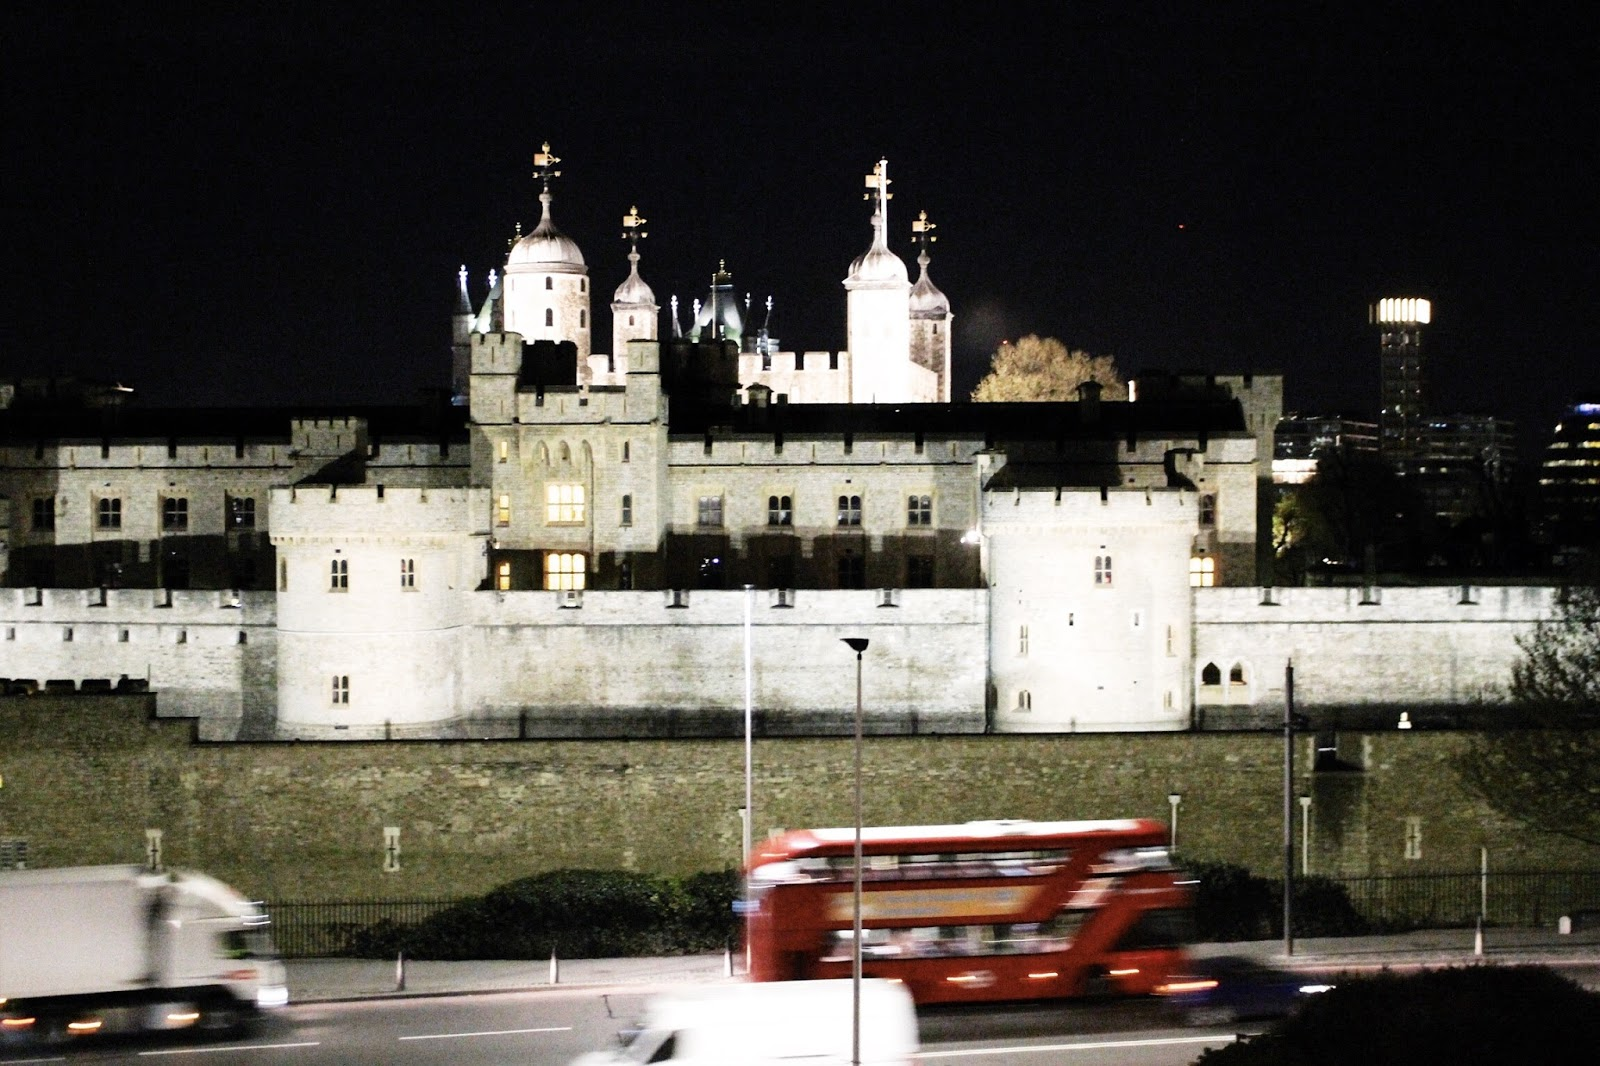 Historic Tower of London Lit Up at Night